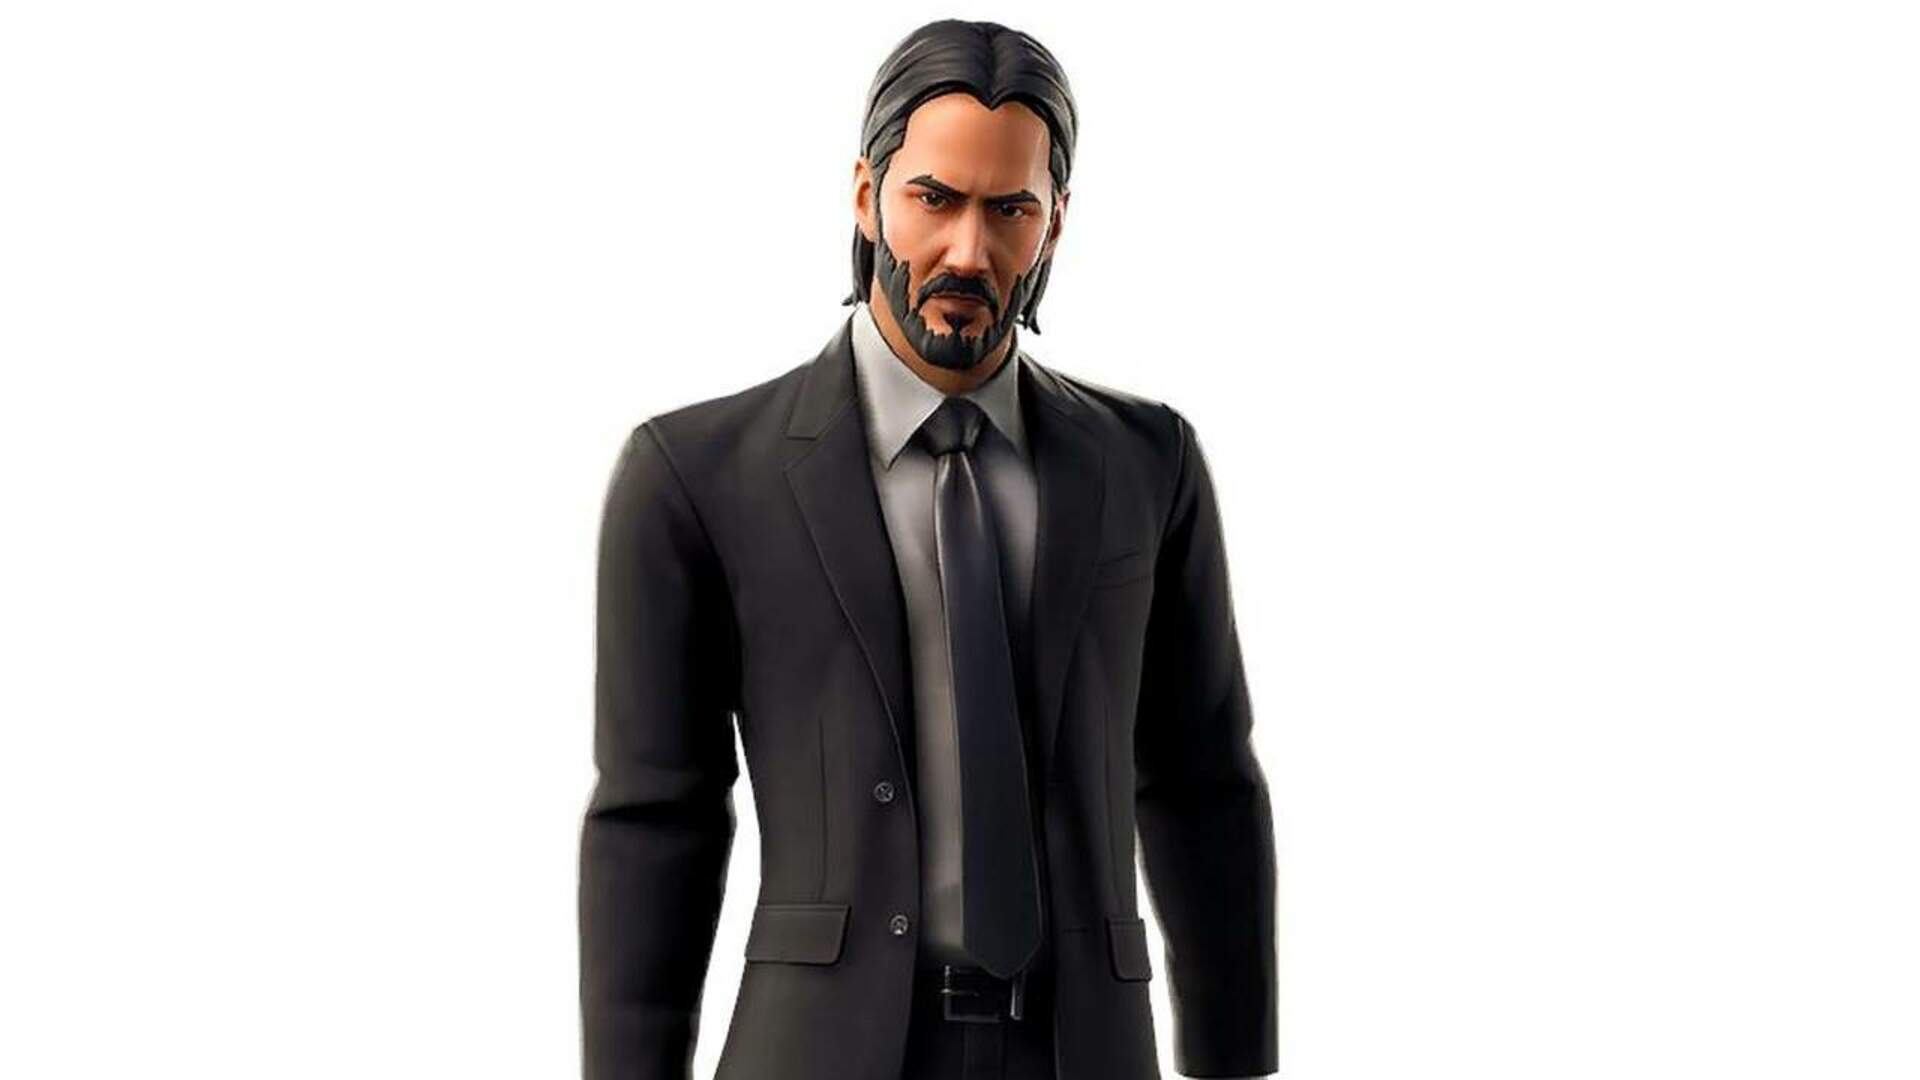 Fortnite's Upcoming John Wick LTM Details Leak, Revealing Skins and the Continental Hotel